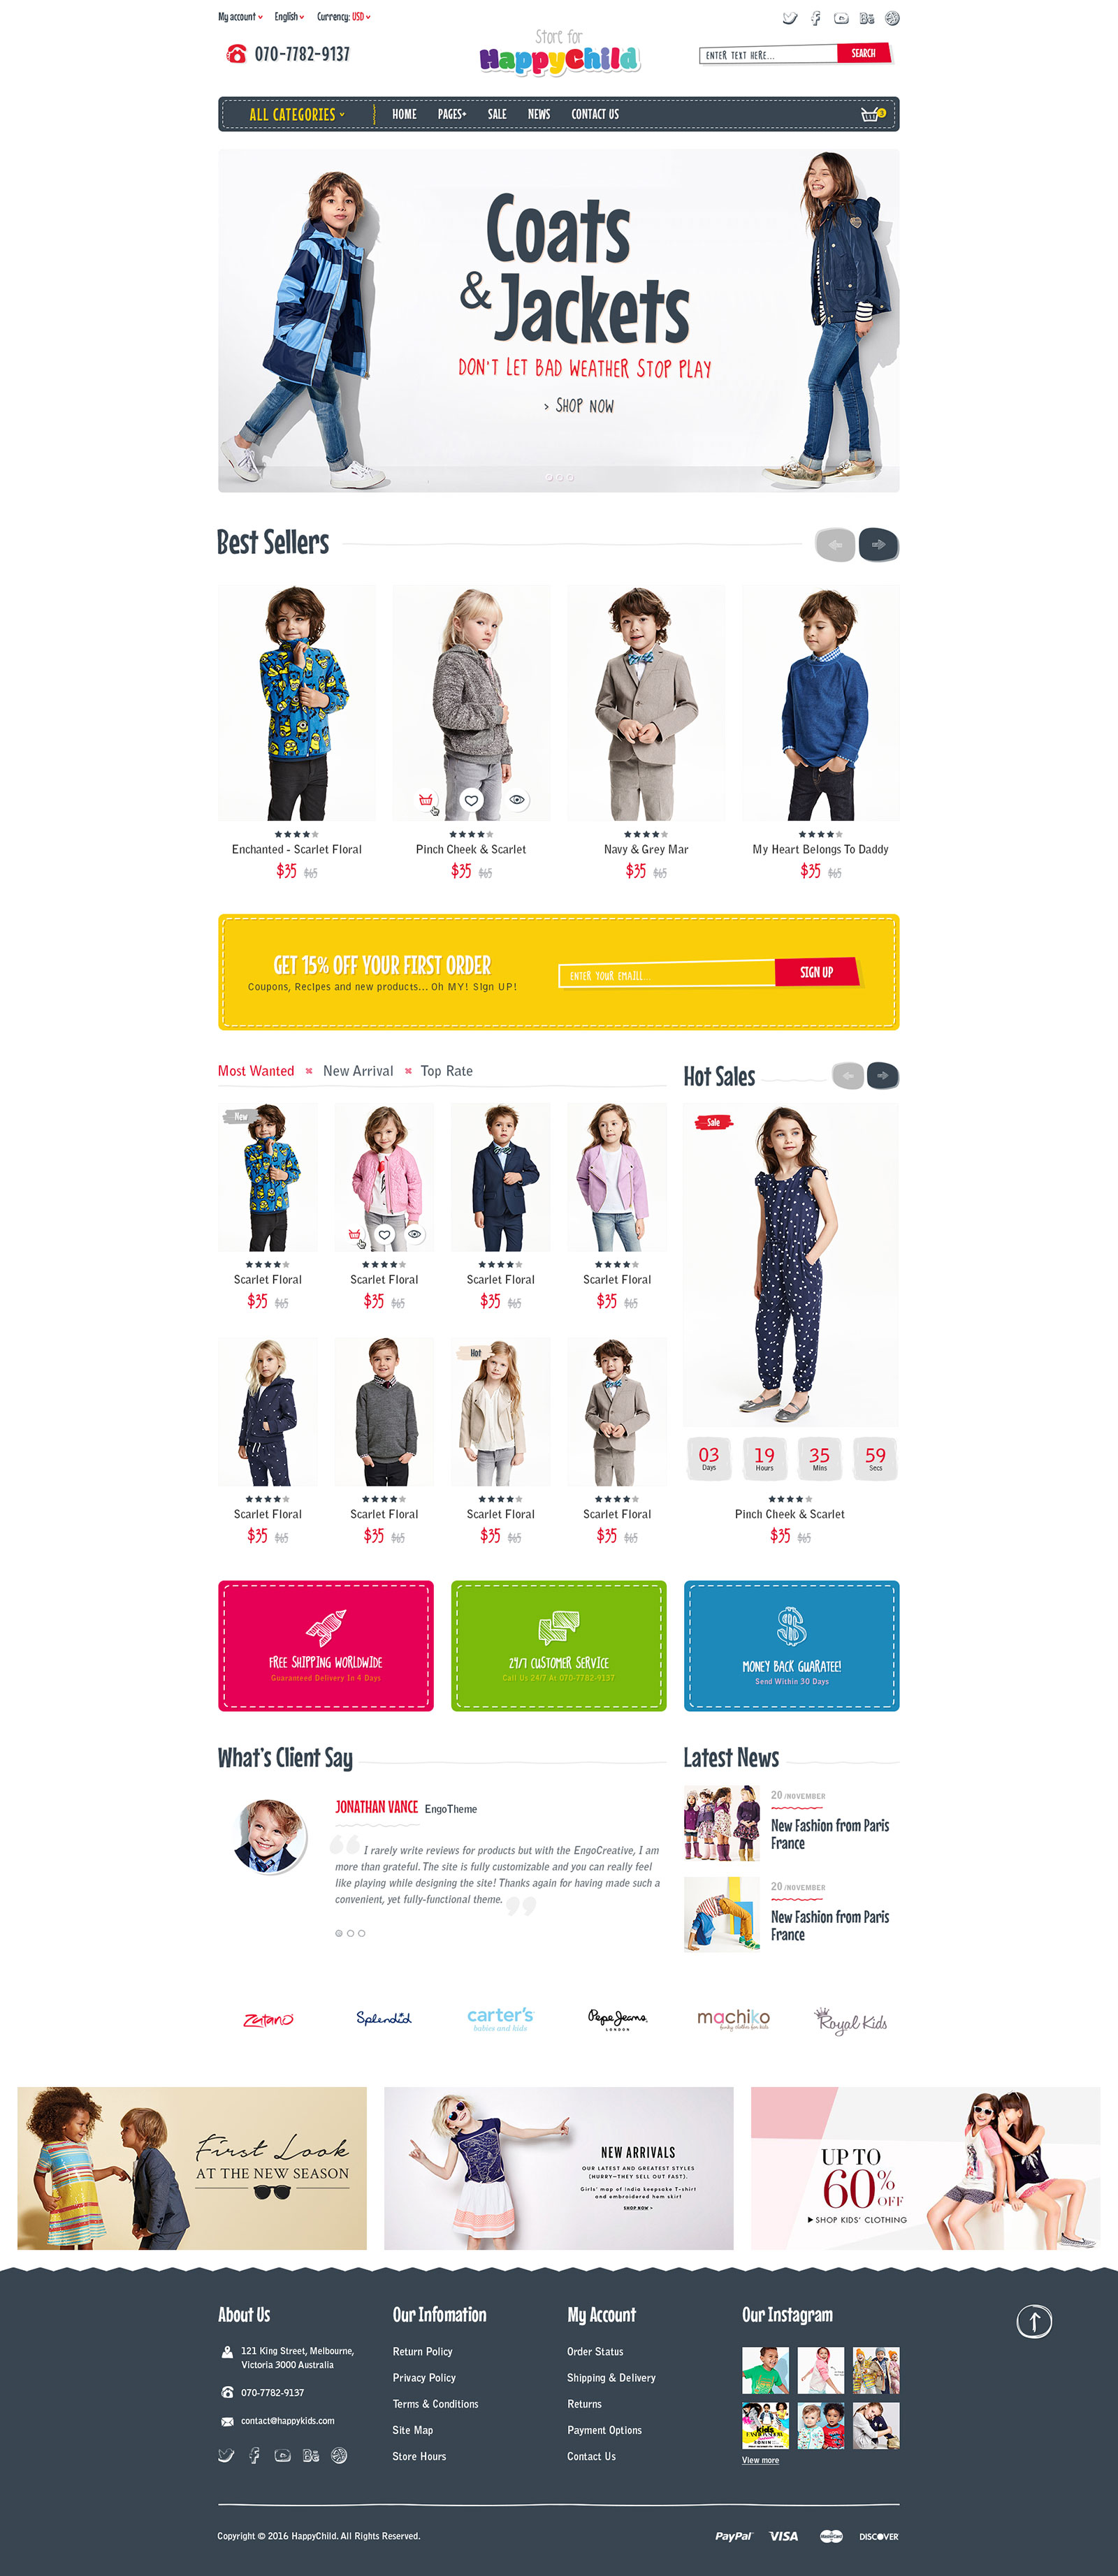 Best SHOPIFY Premium Themes Collection for Toy Stores 2017 - HappyChild - Multi Store Responsive Shopify Theme